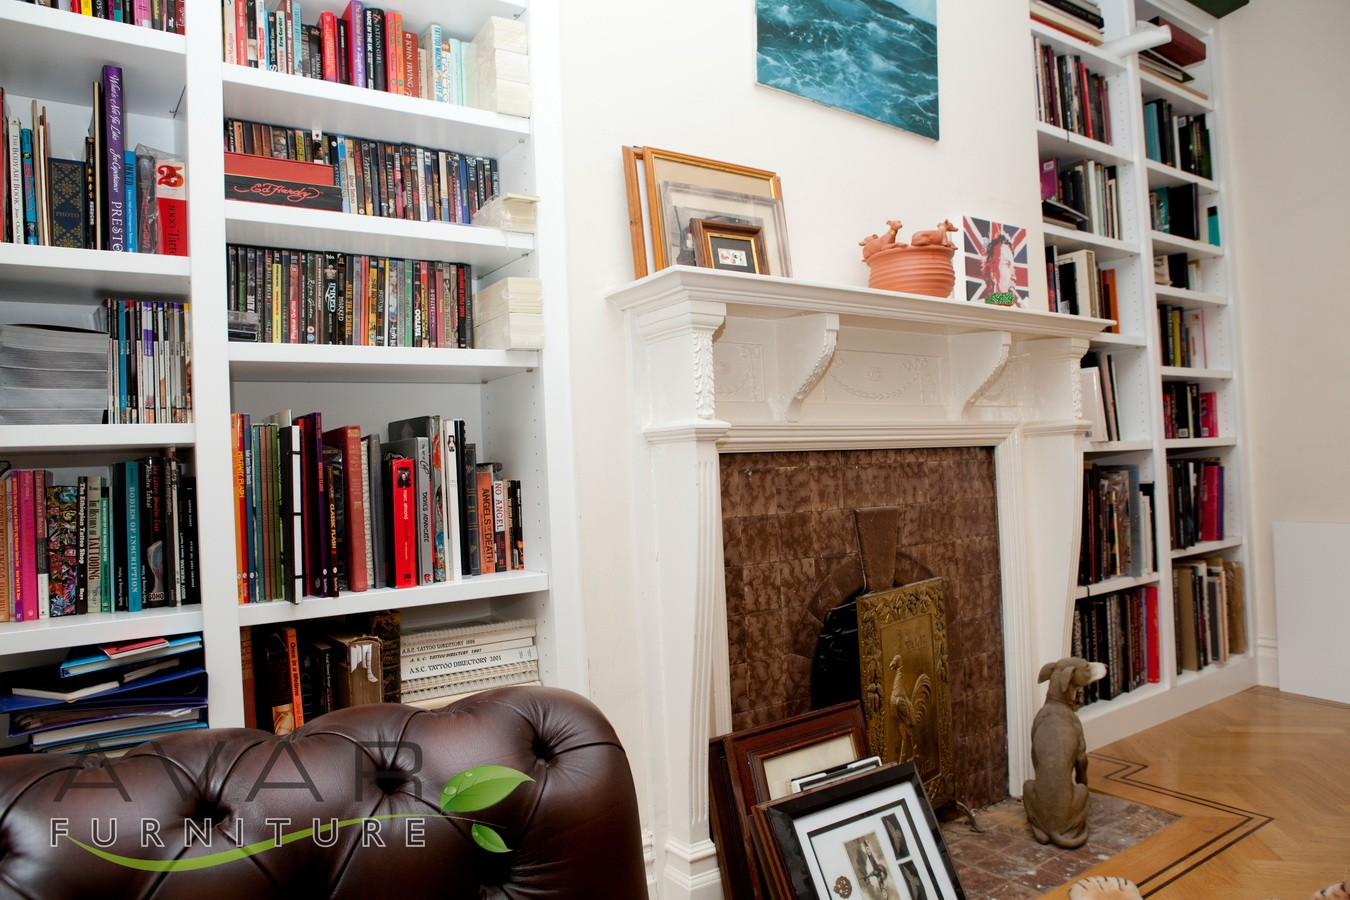 Bespoke Under Stairs Shelving: ƸӜƷ Bespoke Bookcase Ideas / Gallery 1